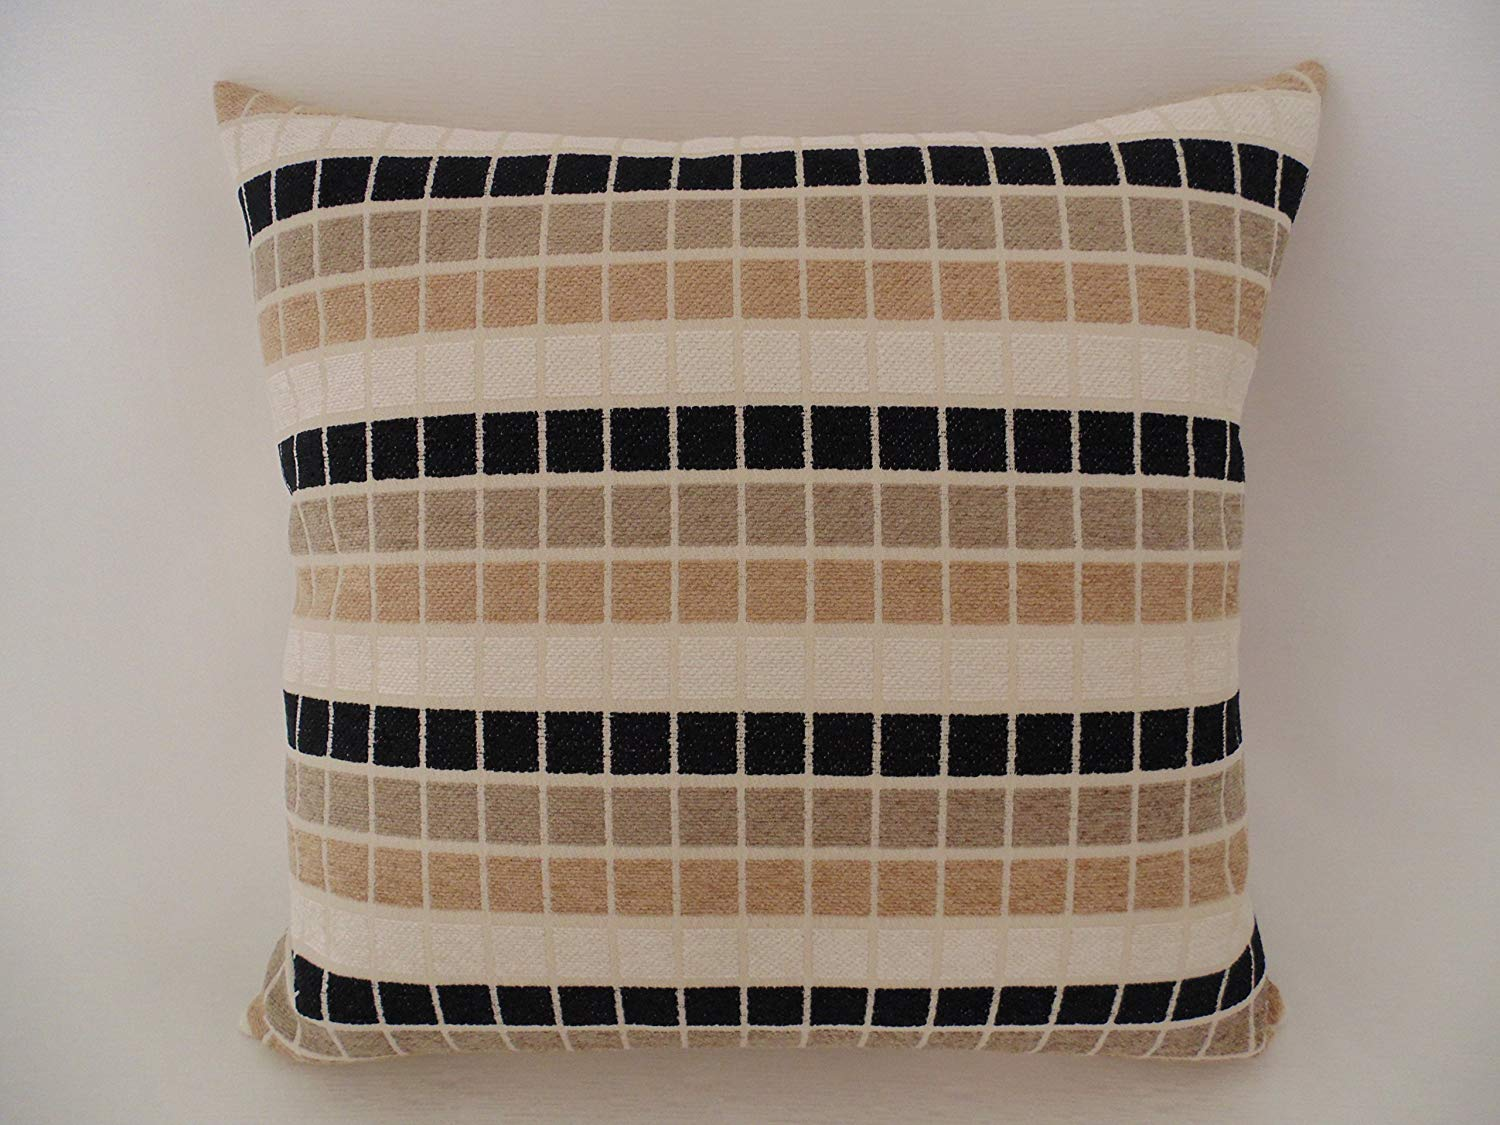 Chenille Black Beige Ivory Squares Decorative Throw Pillow Feathers Insert Included 16 X Handmade Cover